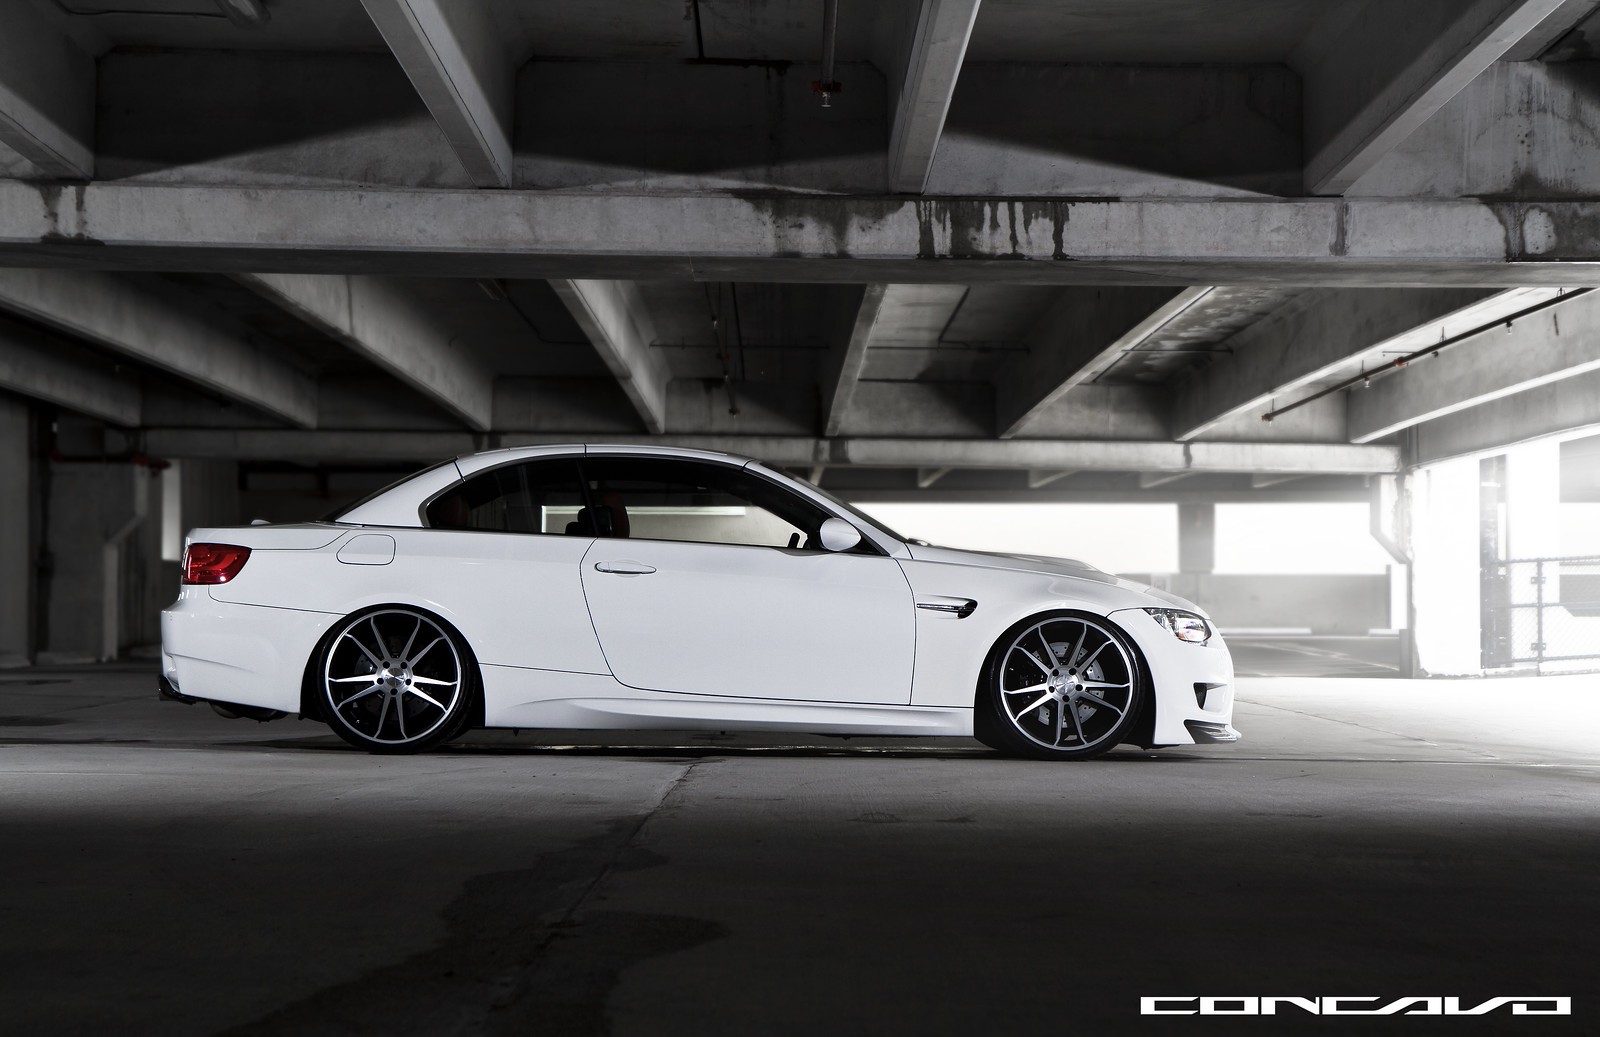 White Hot E93 M3 Sitting Low